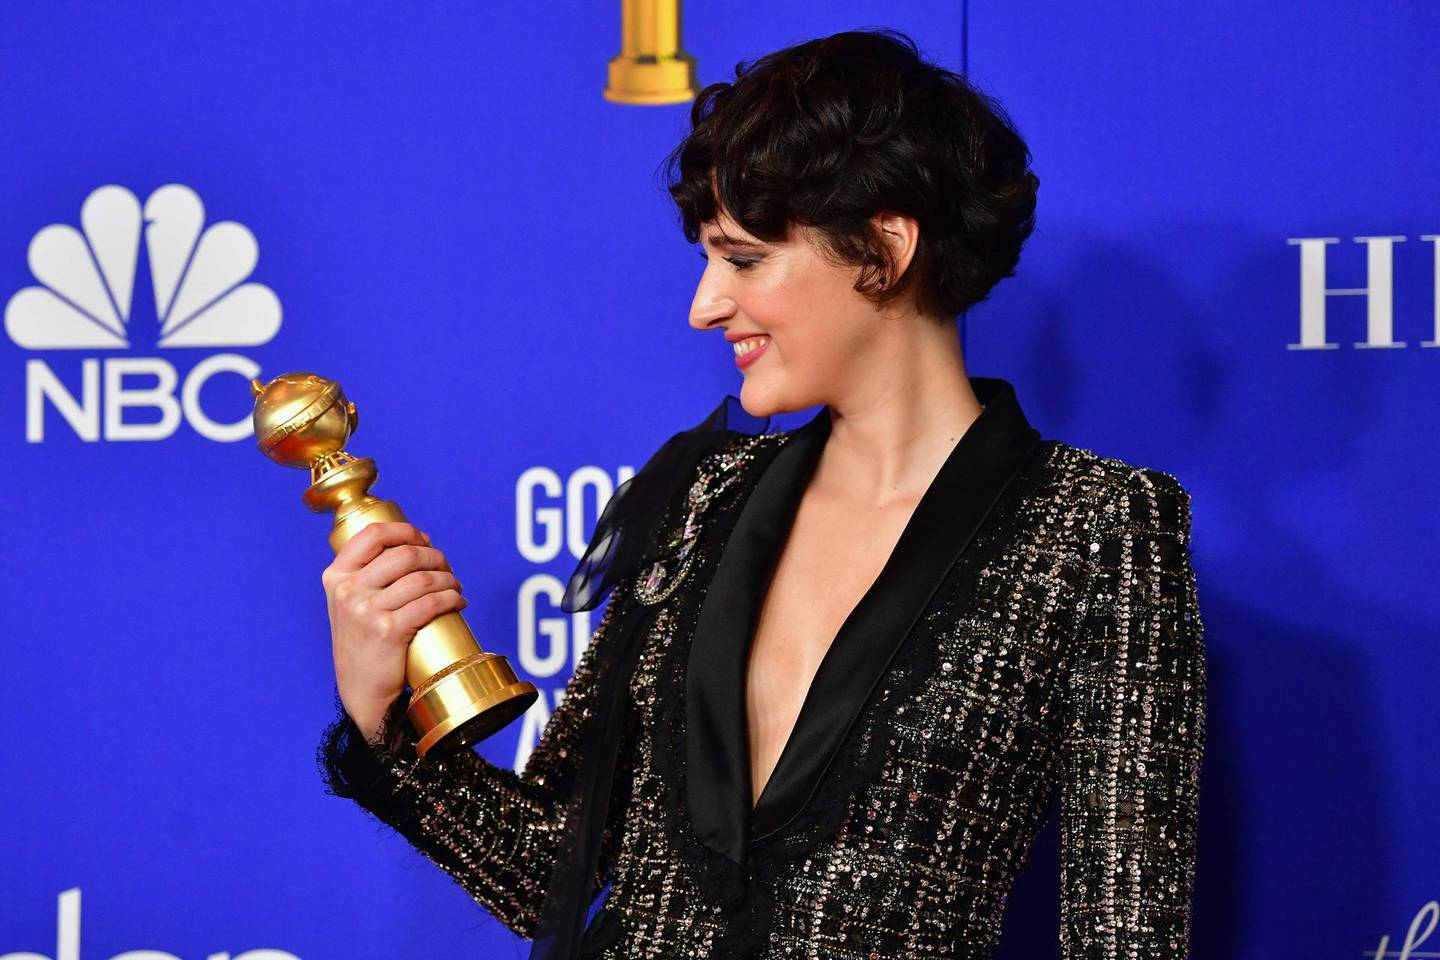 TOPSHOT - British actress Phoebe Waller-Bridge poses in the press room with the award for Best Performance by an Actress in a Television Series - Musical or Comedy during the 77th annual Golden Globe Awards on January 5, 2020, at The Beverly Hilton hotel in Beverly Hills, California. / AFP / FREDERIC J. BROWN